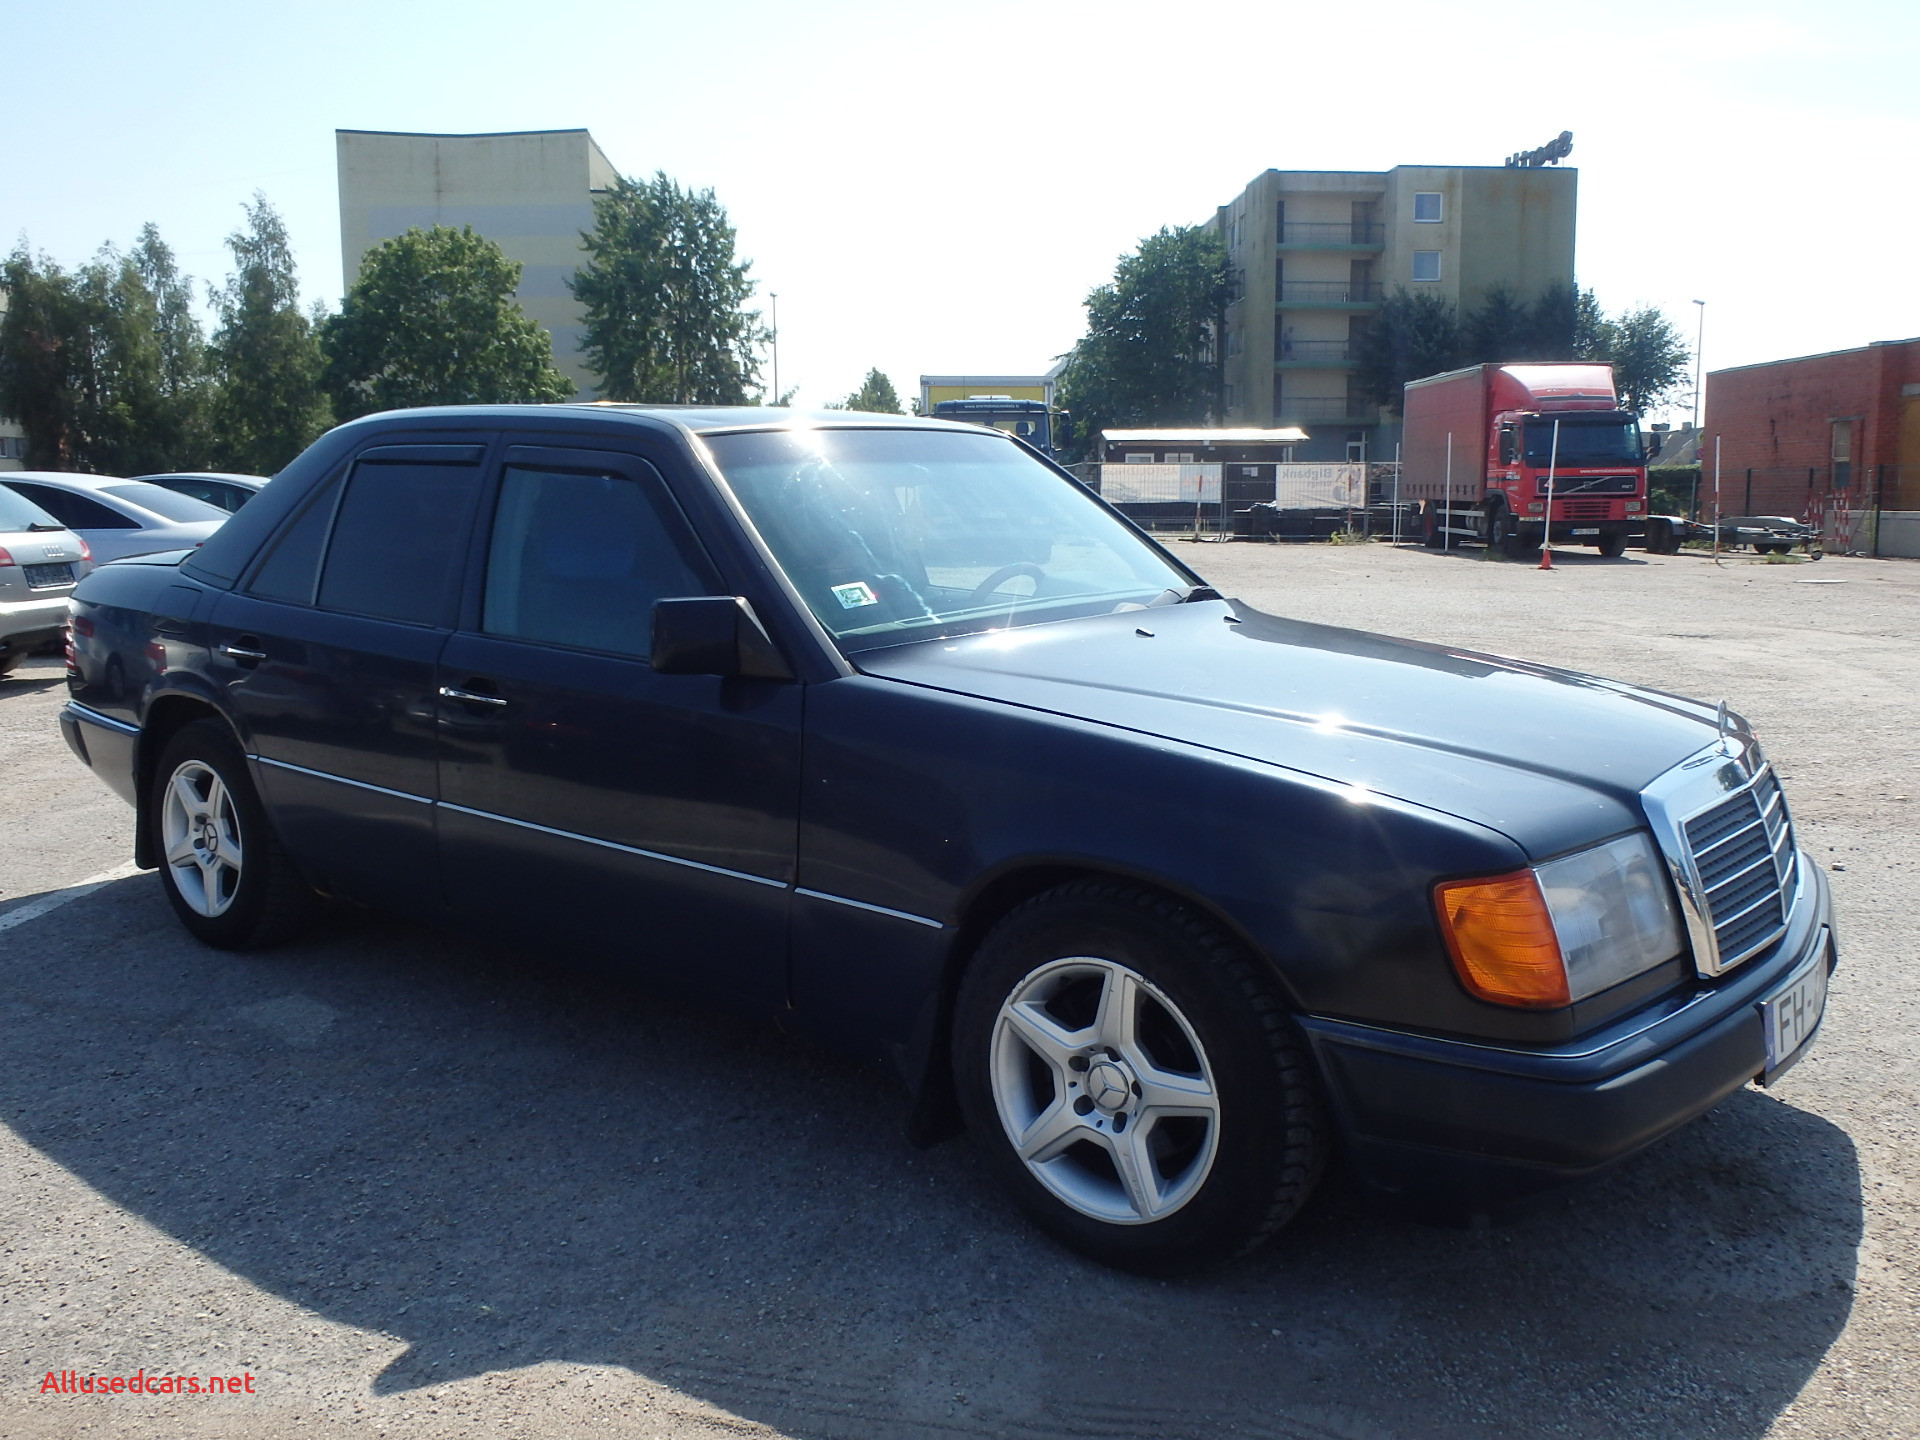 Mercedes 2008 Lovely Mercedes Benz 2 0d 1992g Dzvauto